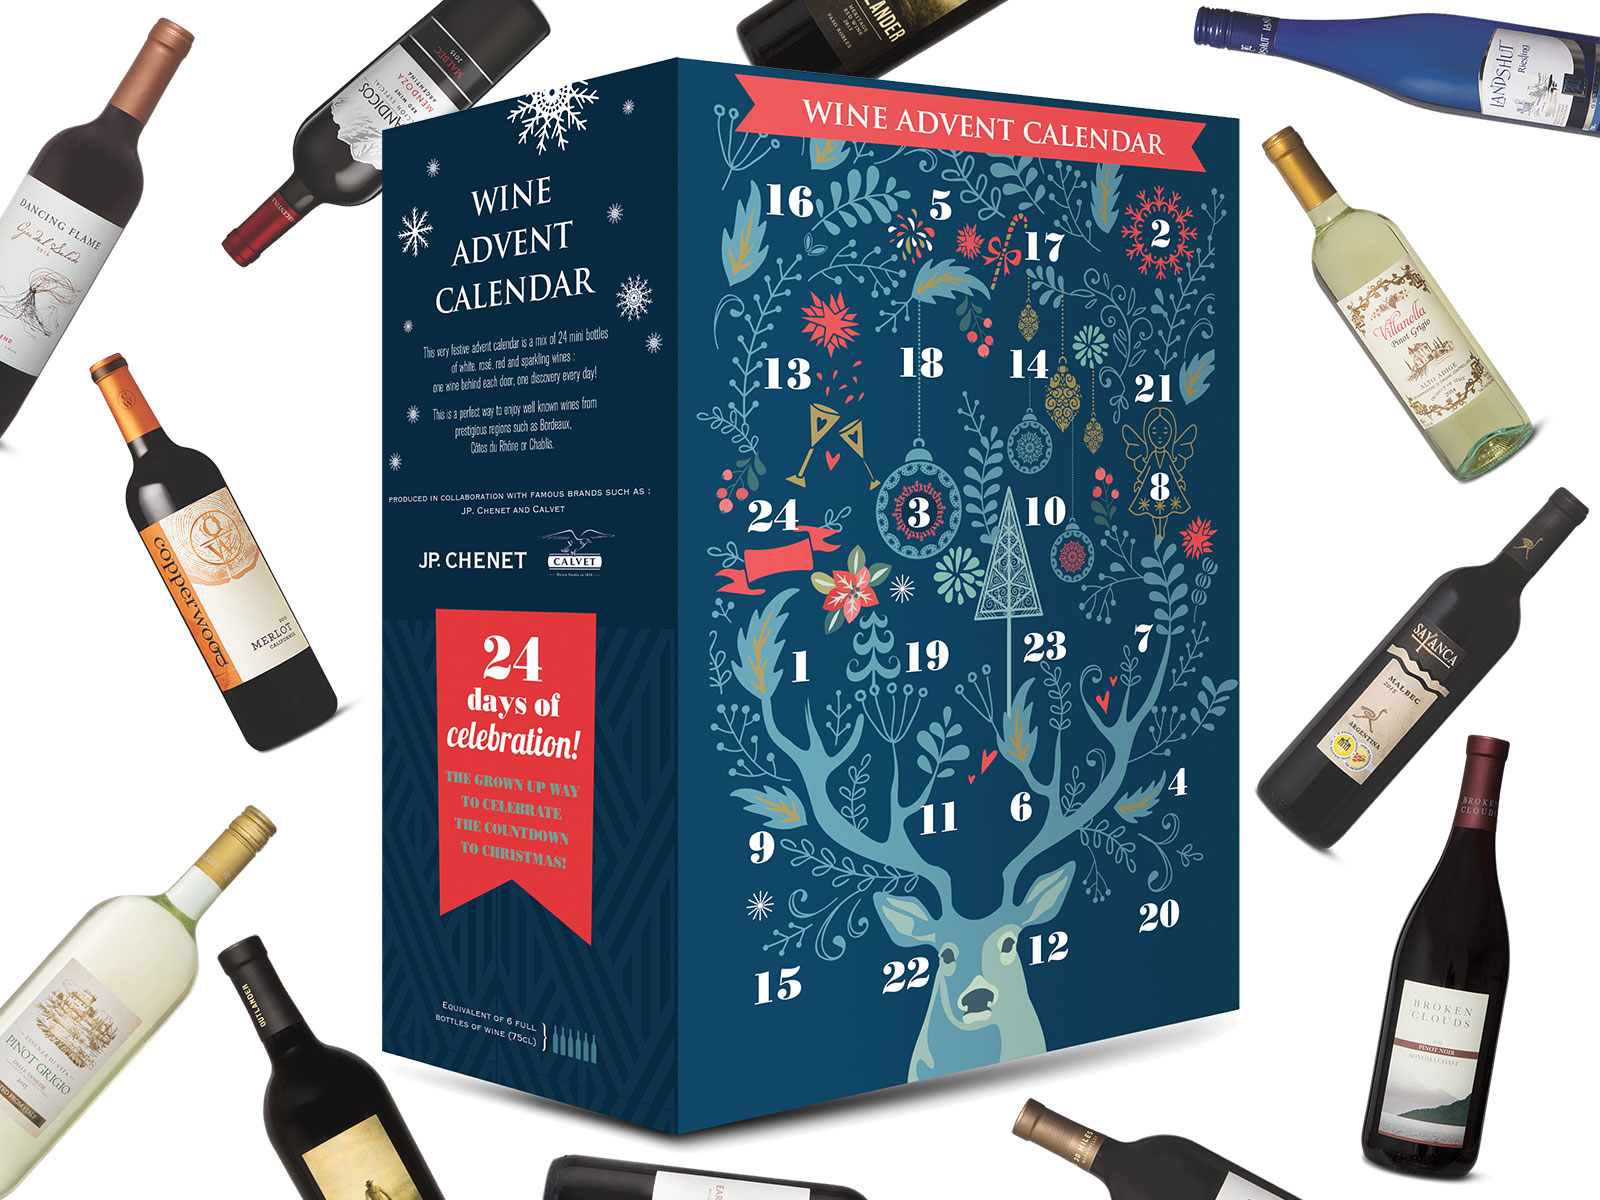 Aldi's Wine Advent Calendar Contains 6 Bottles Worth of Wine